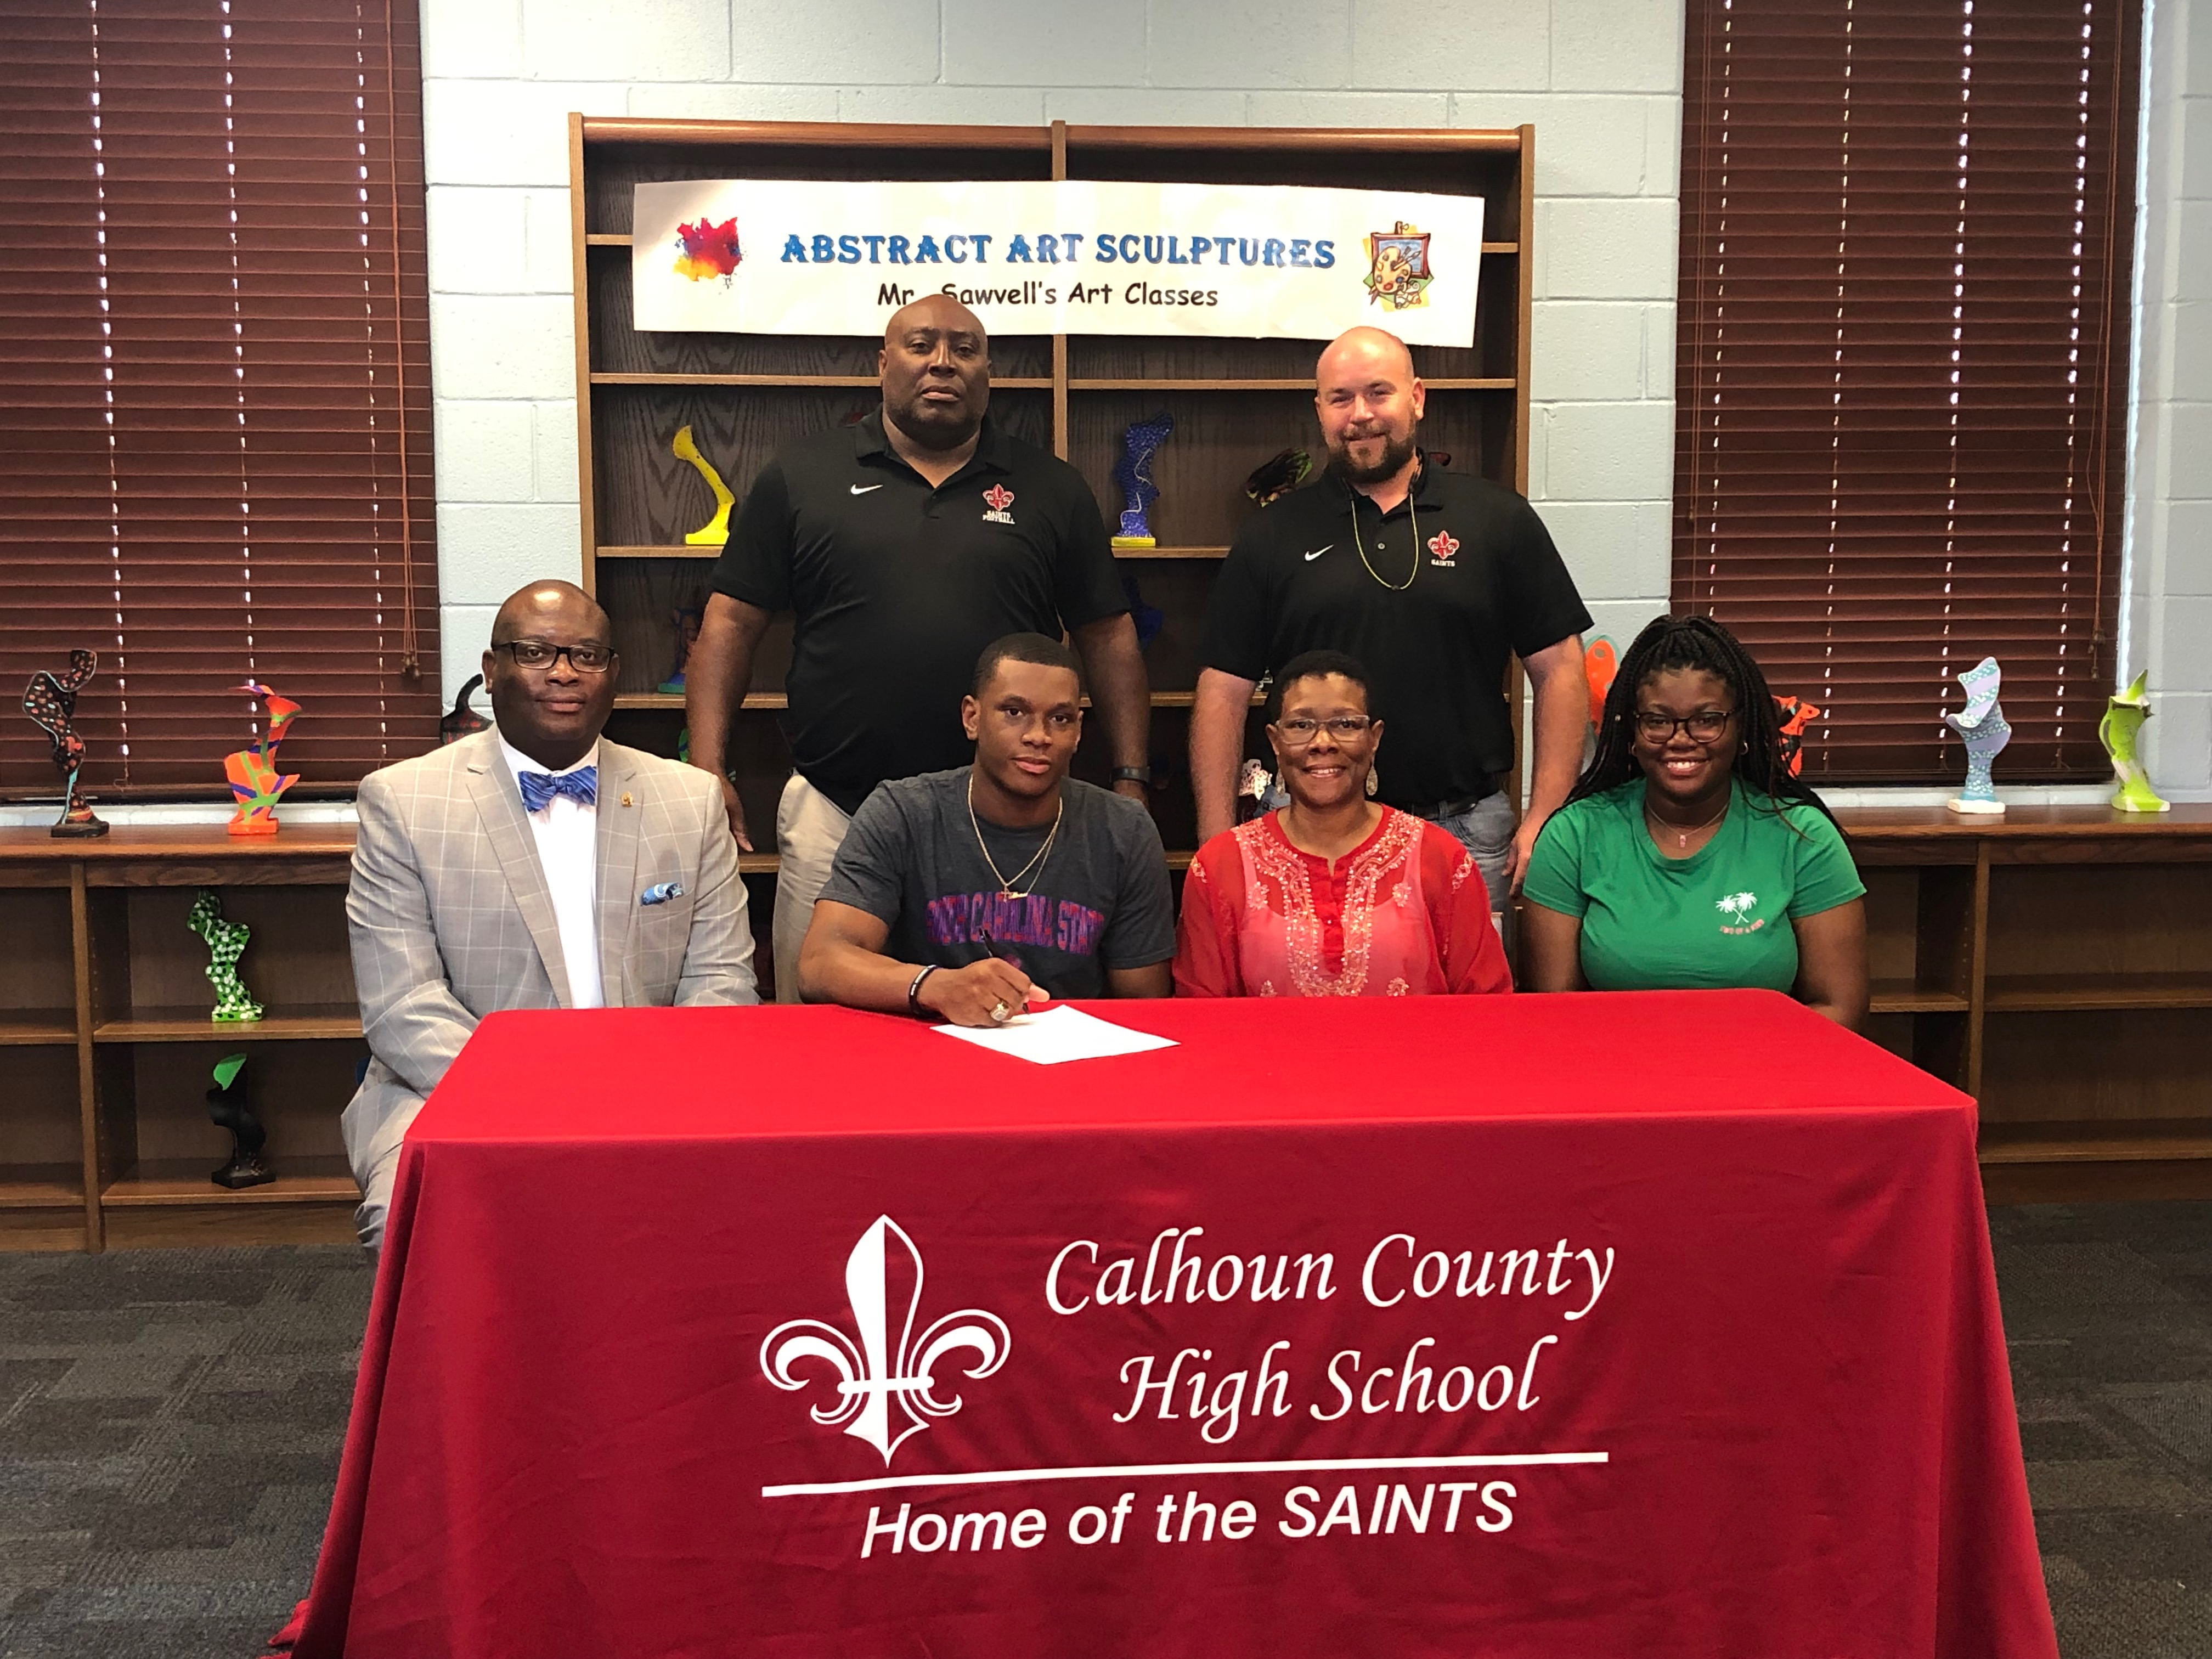 Tullock is pictured with Calhoun County High School Head Football Coach Wayne Farmer, CCHS Athletic Director Justin Farmer, and family members